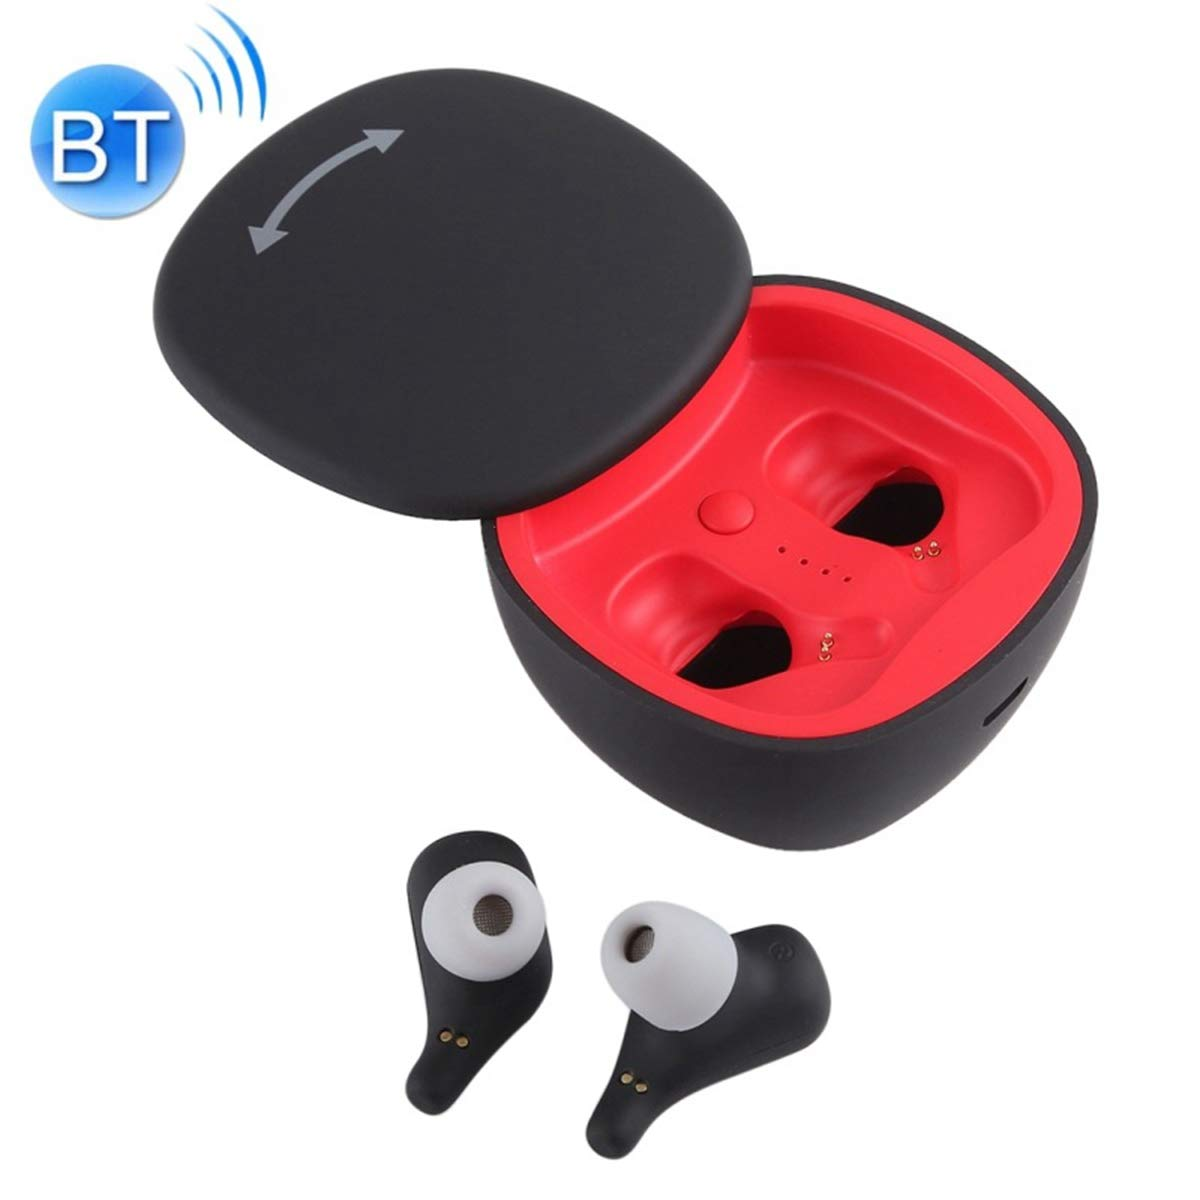 POPUPE A2 TWS Outdoor Sports Portable in-Ear Bluetooth V5.0 + EDR Earphone with 360 Degree Rotation Charging Box (Black)